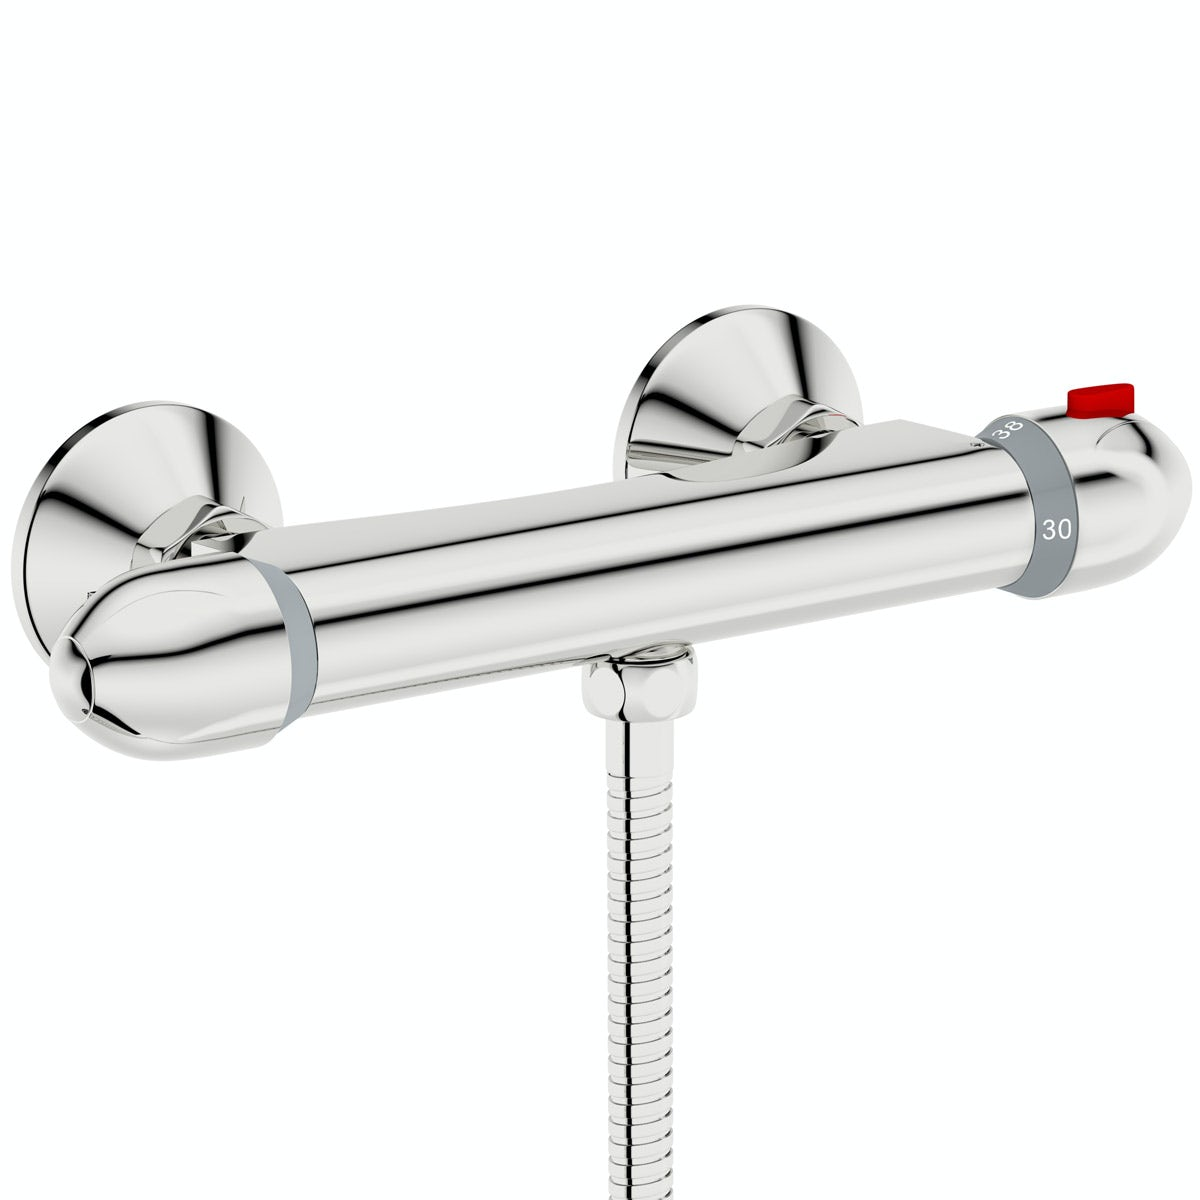 Orchard Eden bar shower valve